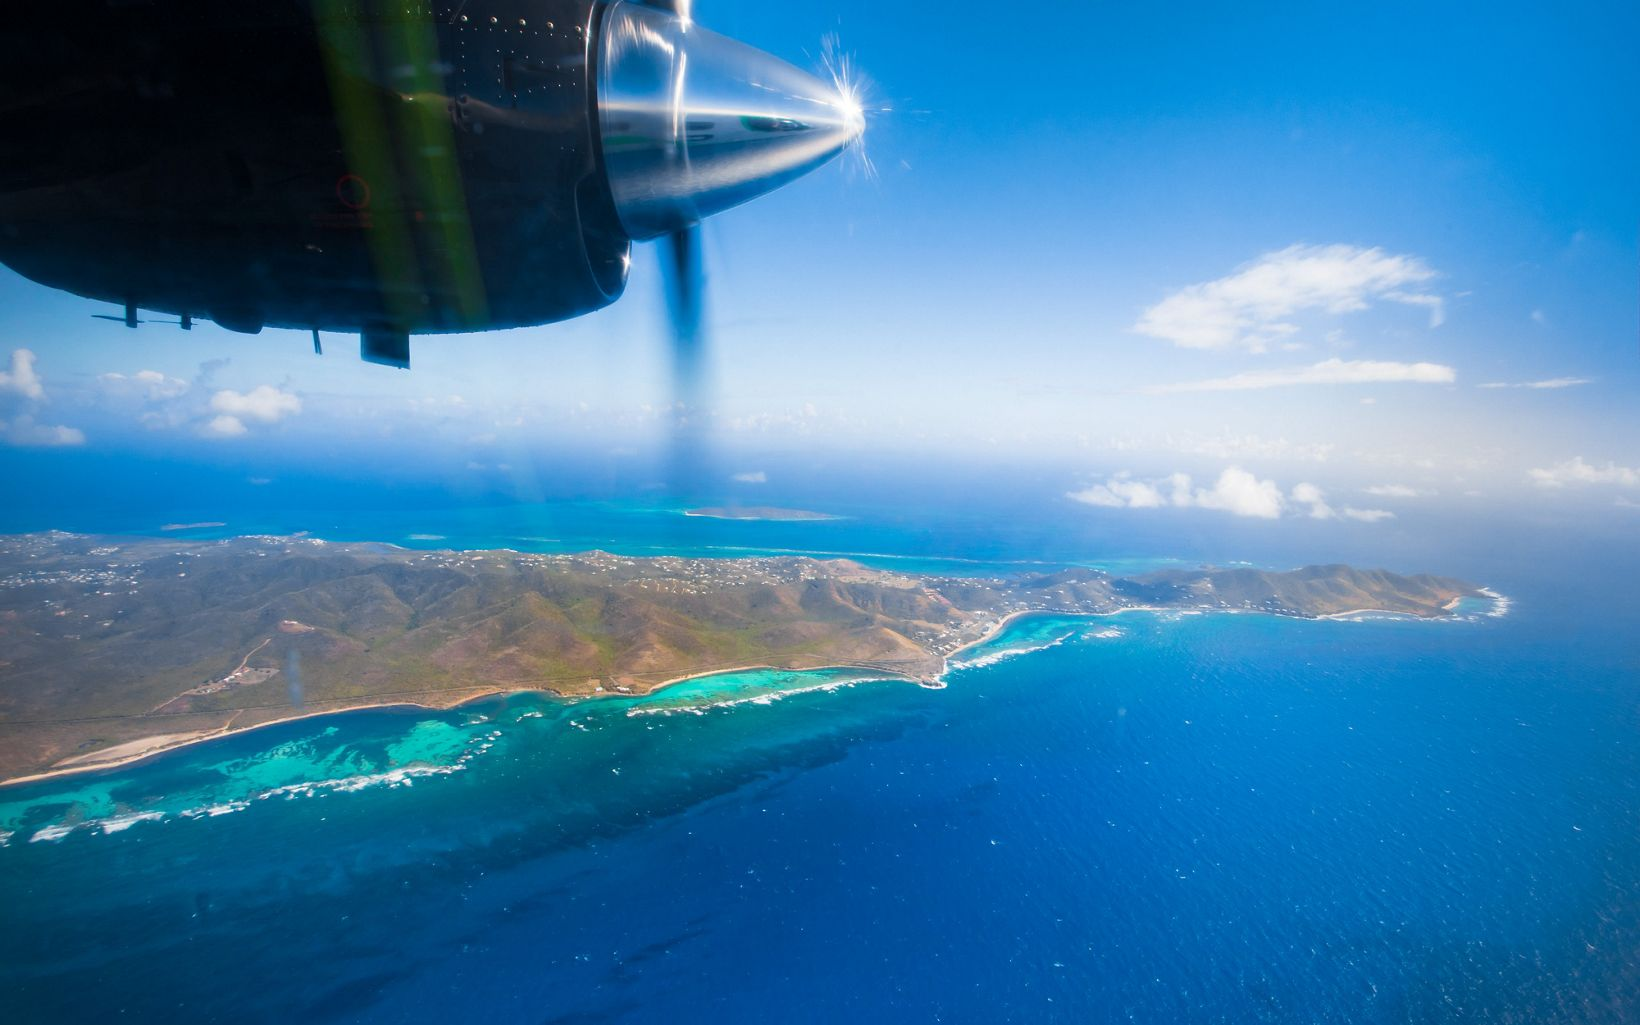 The mission in St. Croix was to map the East End Marine Park, a protected area pictured here.